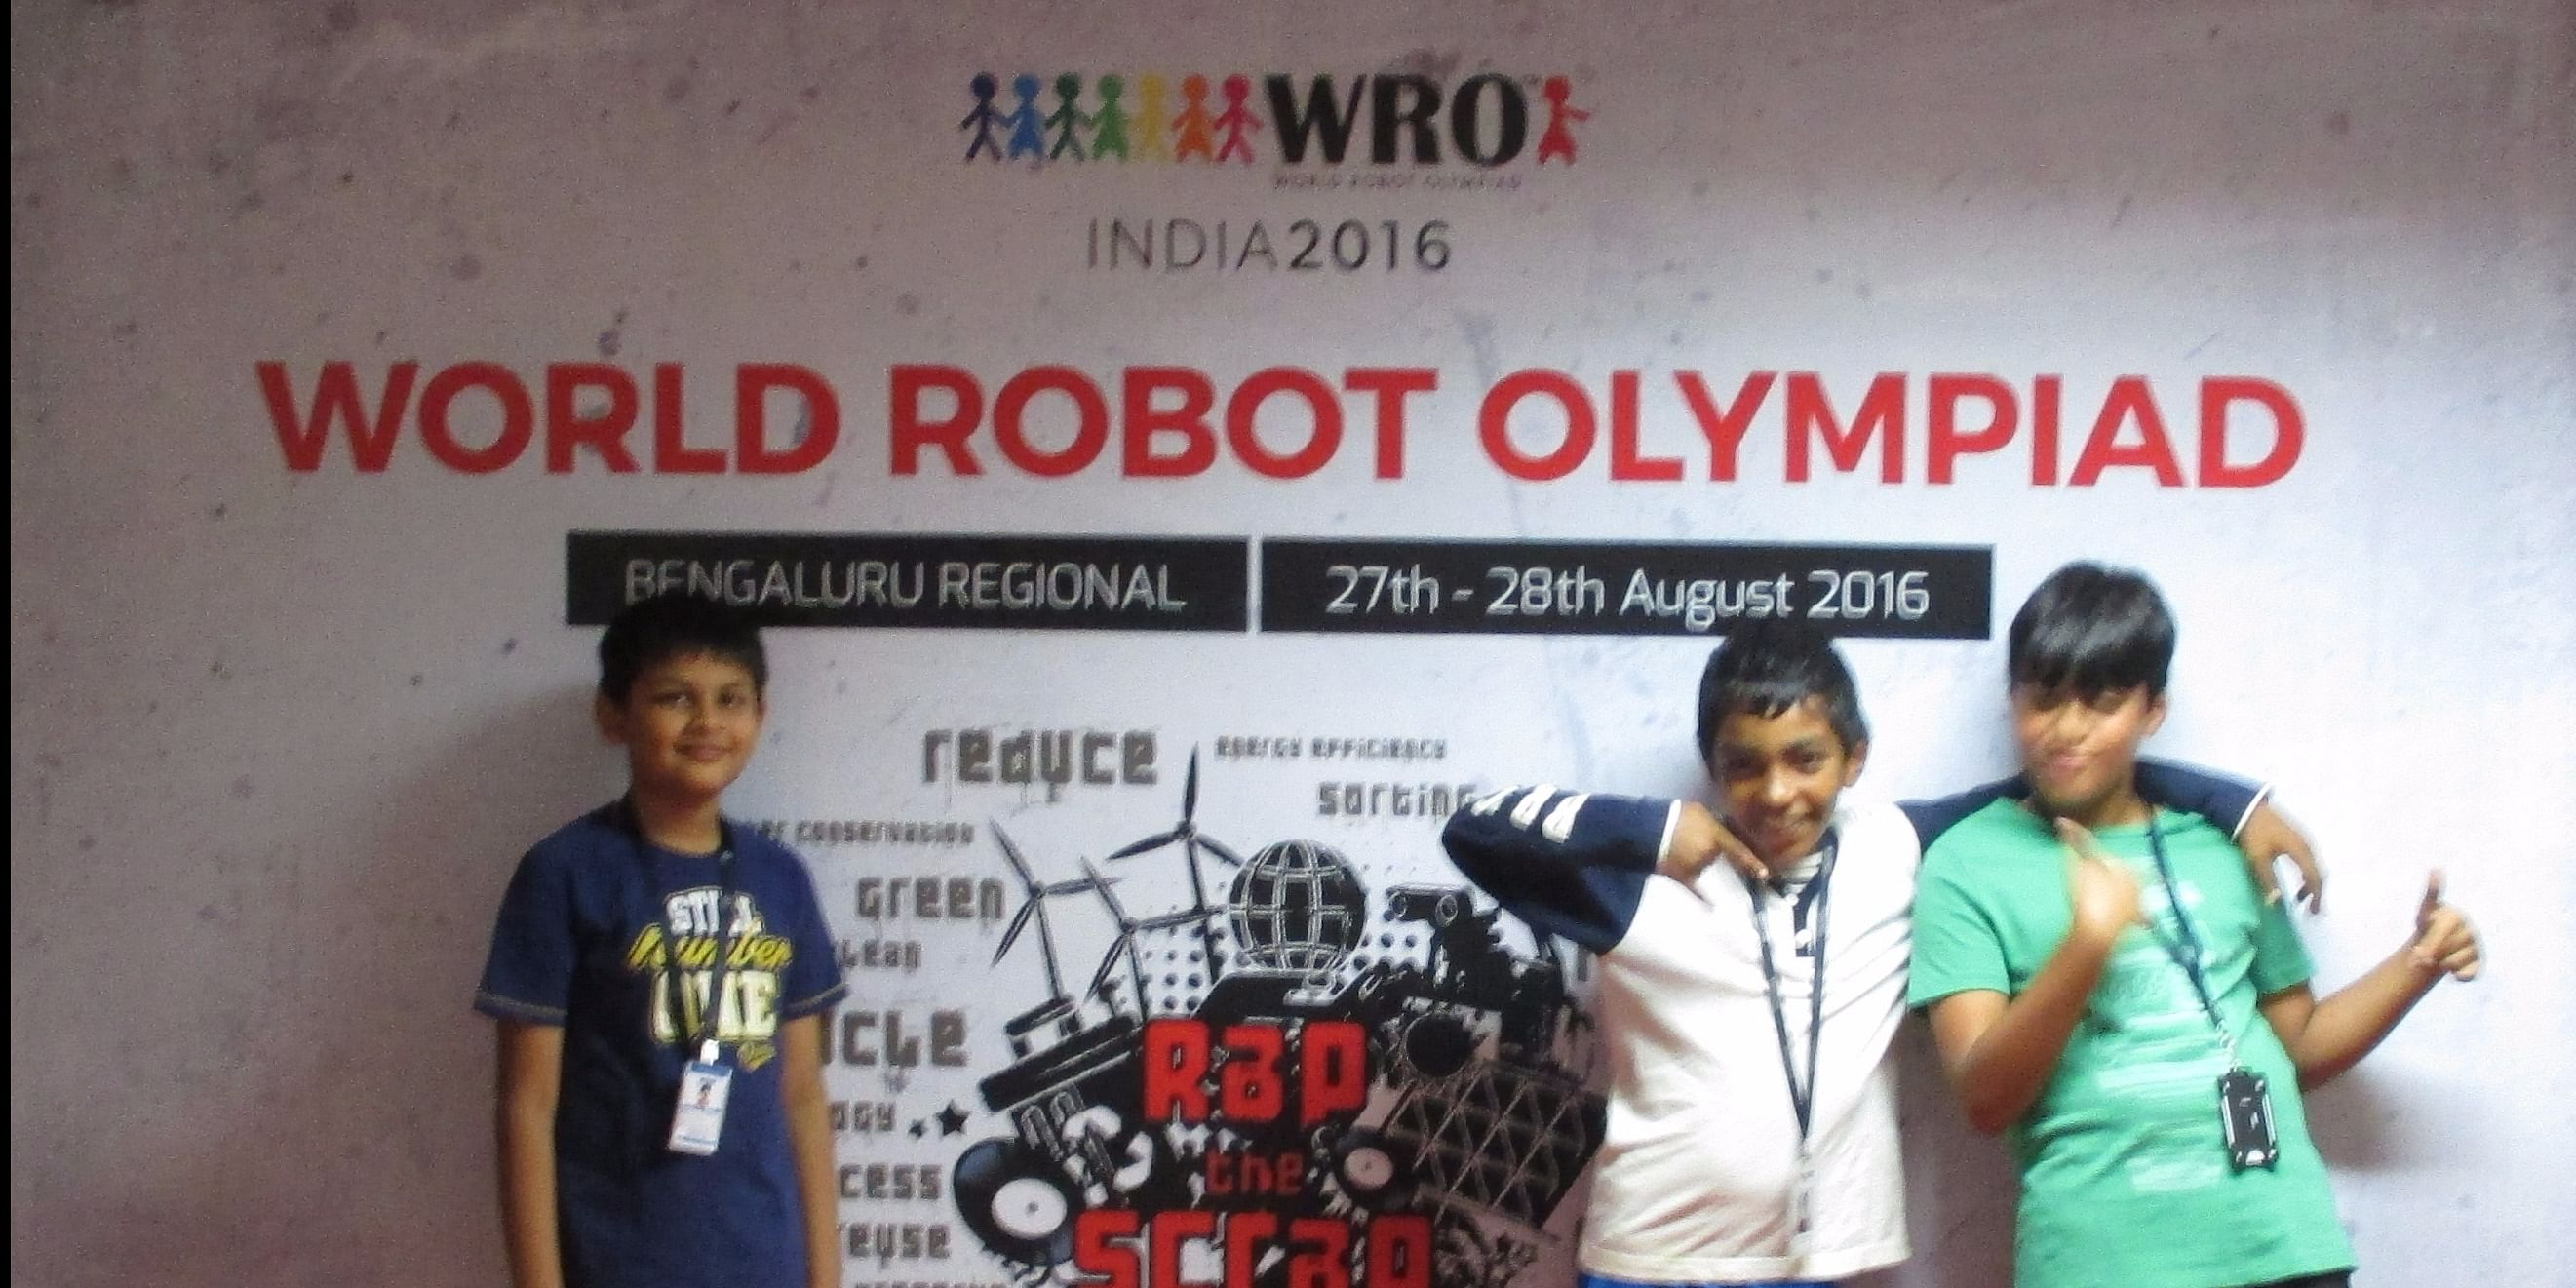 Aadi Sureka, Anirudh and Marc George (3 member team qualifying for national championship from Bangalore region)